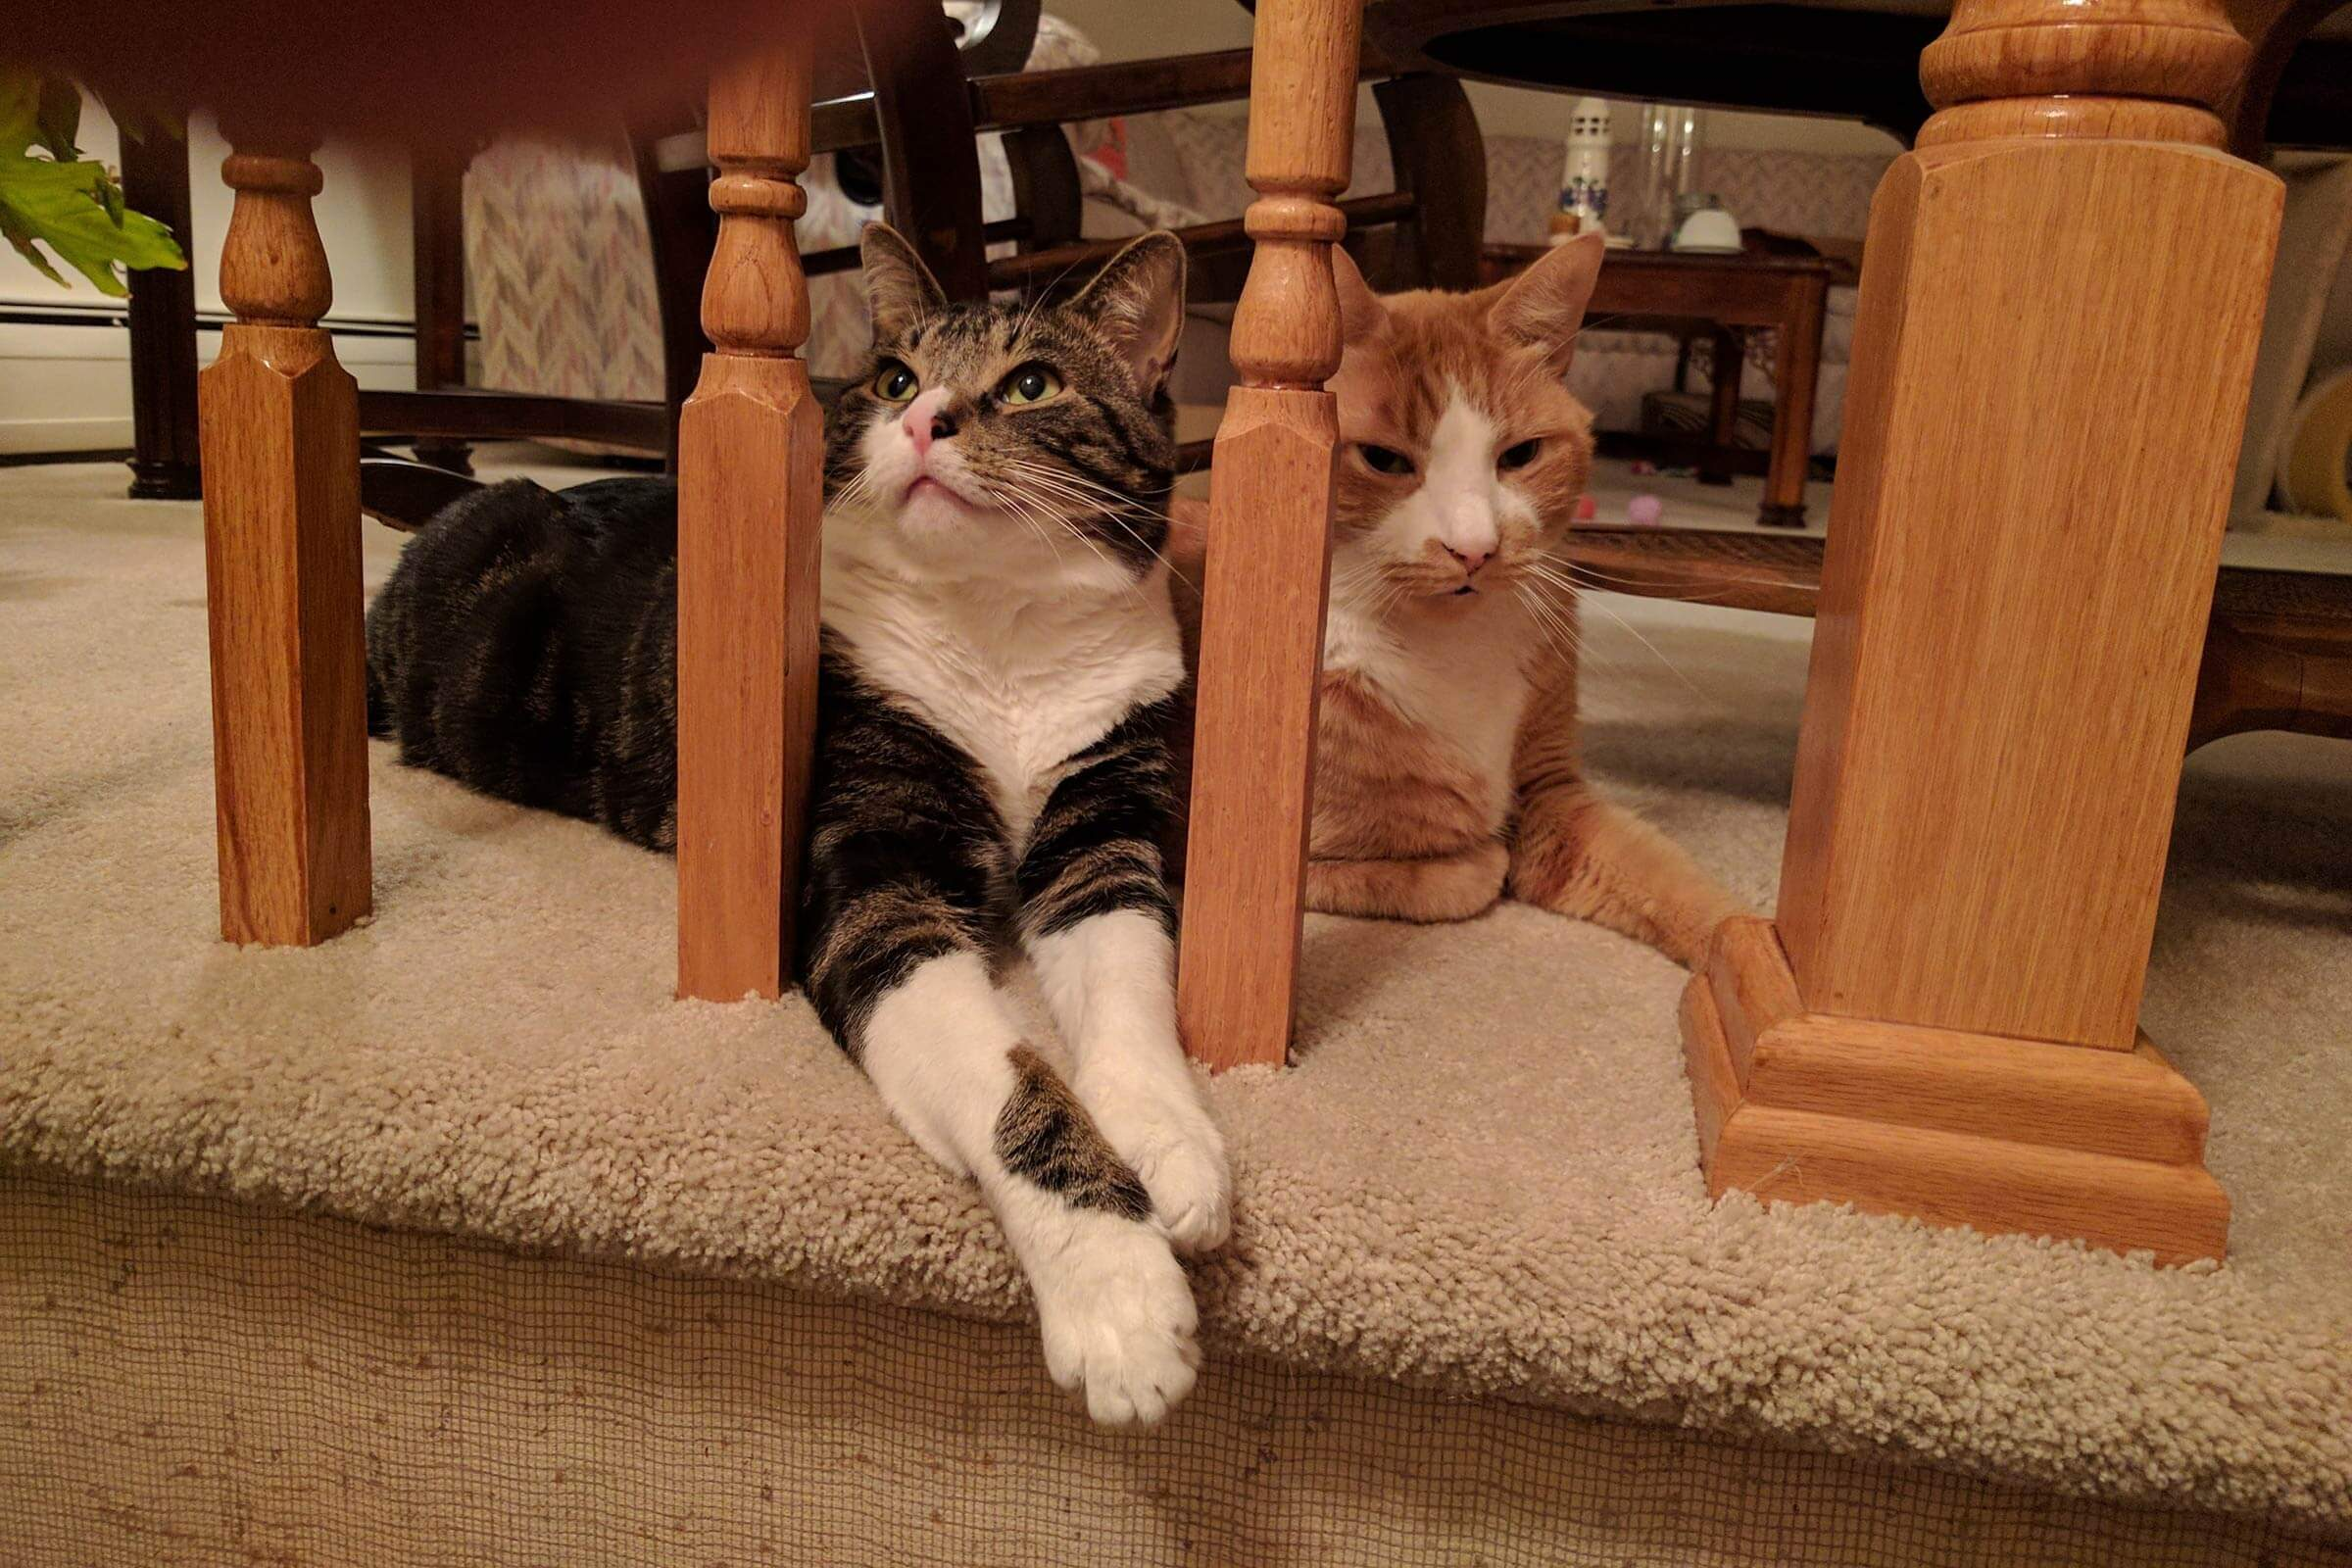 two cats behind the spindles of a bannister